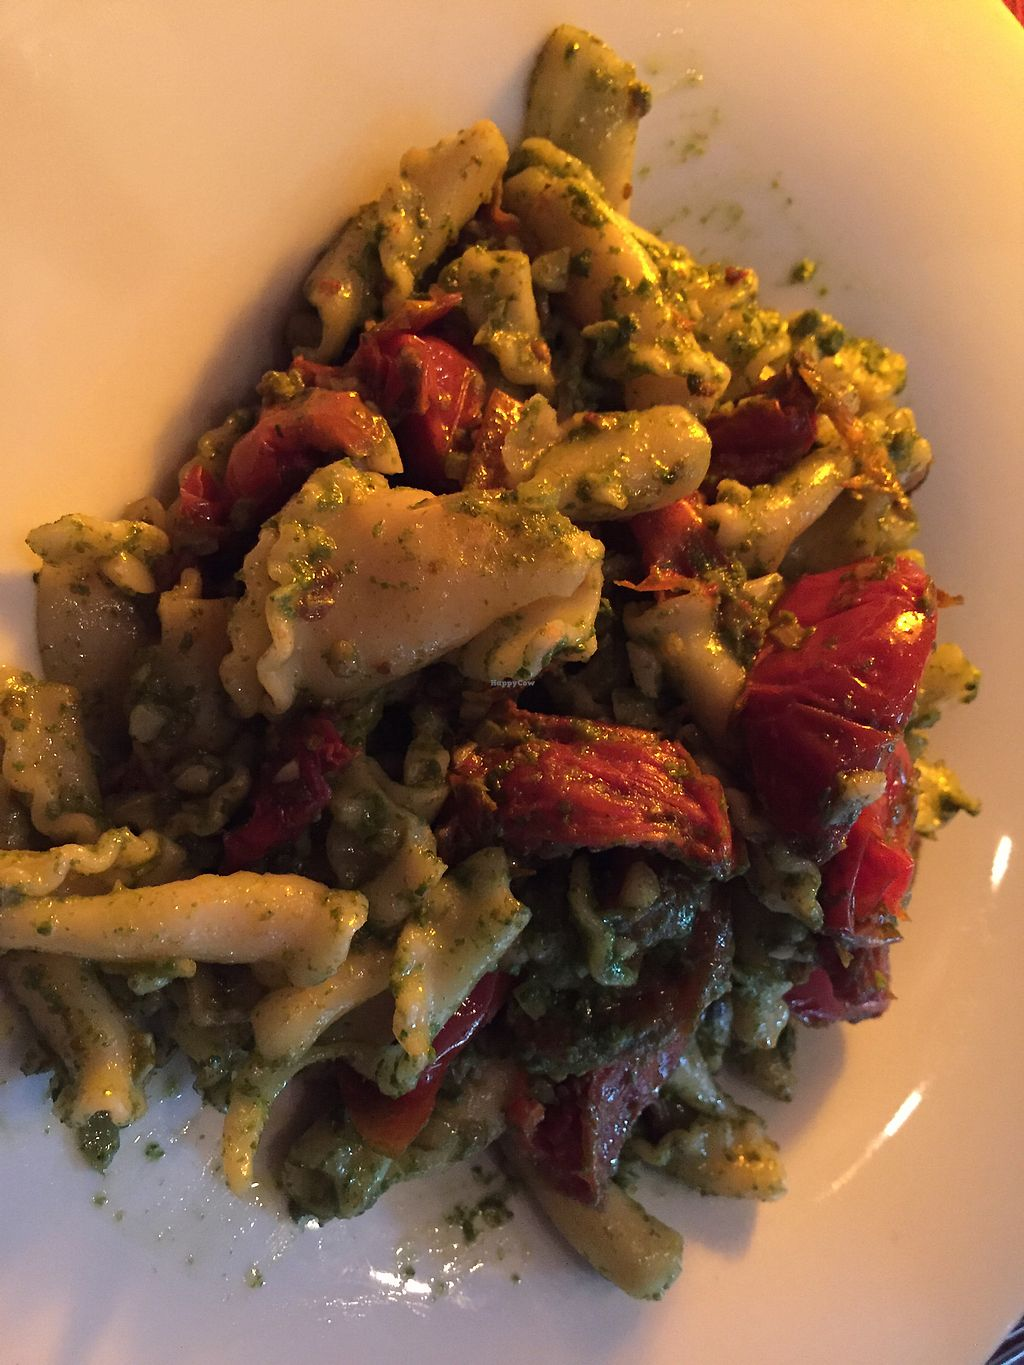 """Photo of Arad Evans Inn  by <a href=""""/members/profile/SandraHal"""">SandraHal</a> <br/>vegan pesto pasta dish from vegan menu  <br/> August 22, 2017  - <a href='/contact/abuse/image/73201/295724'>Report</a>"""